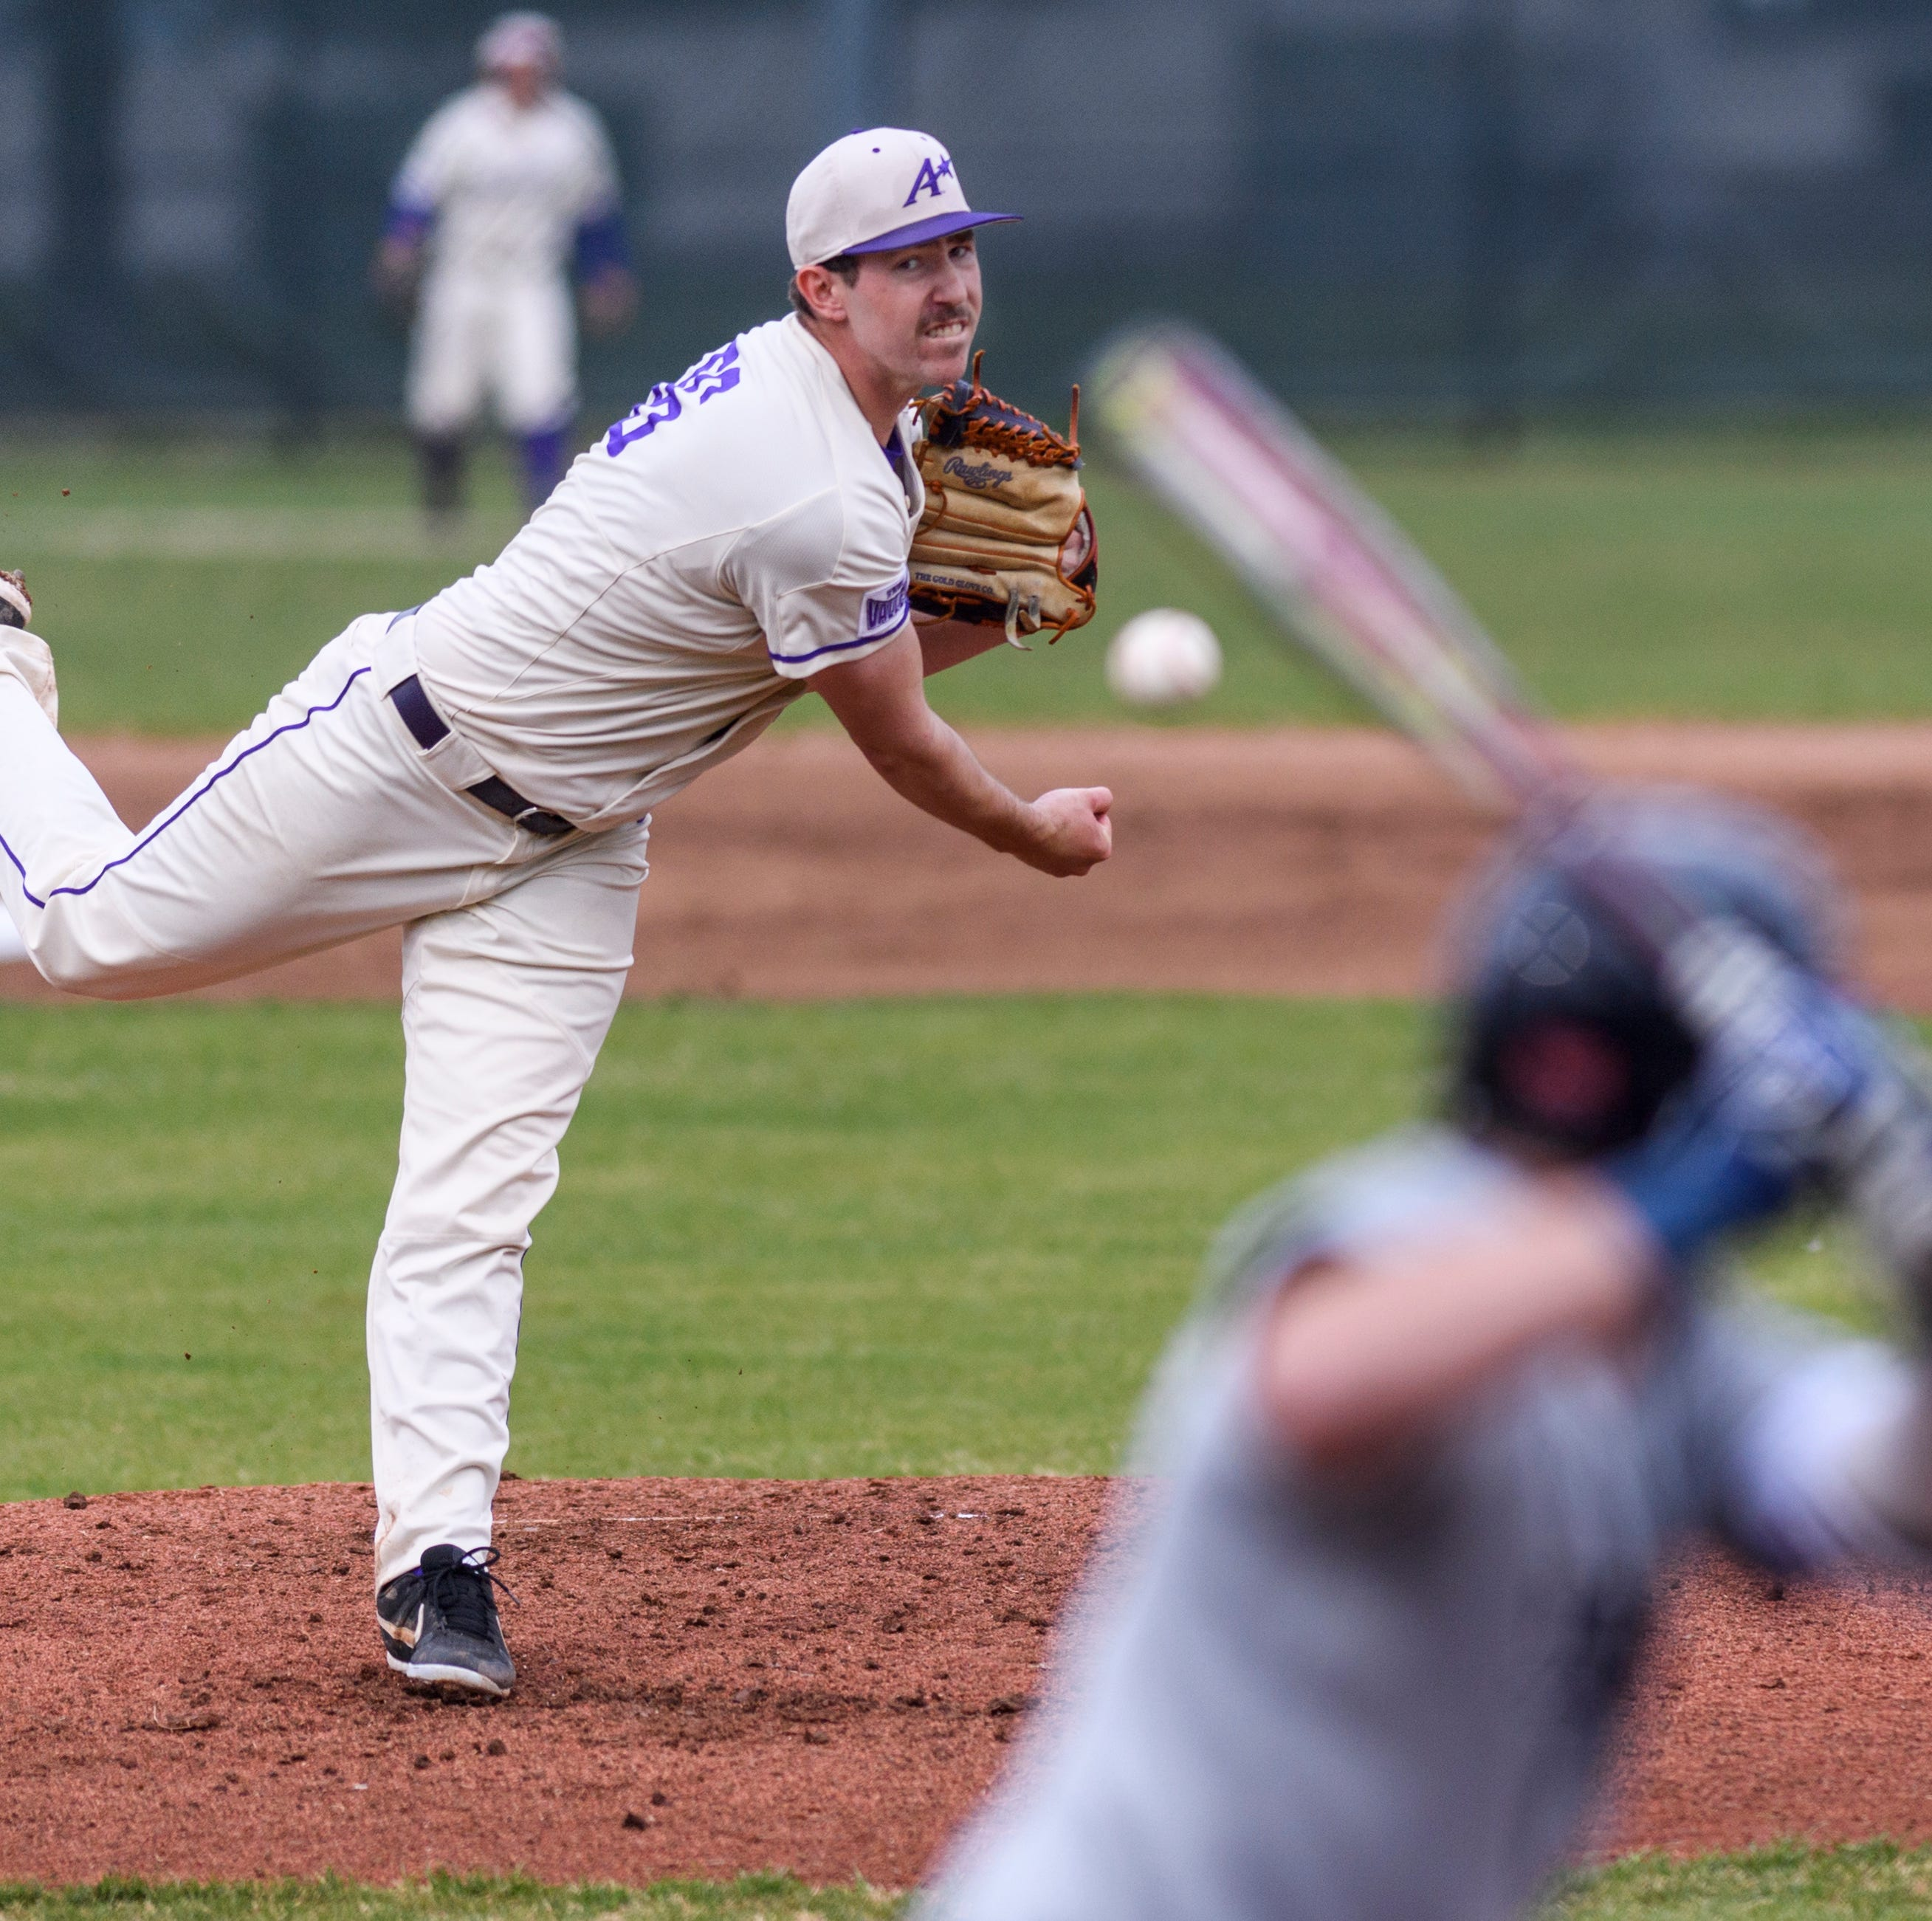 One reason for UE baseball's turnaround? Adam Lukas, whose fastball touches 99 mph